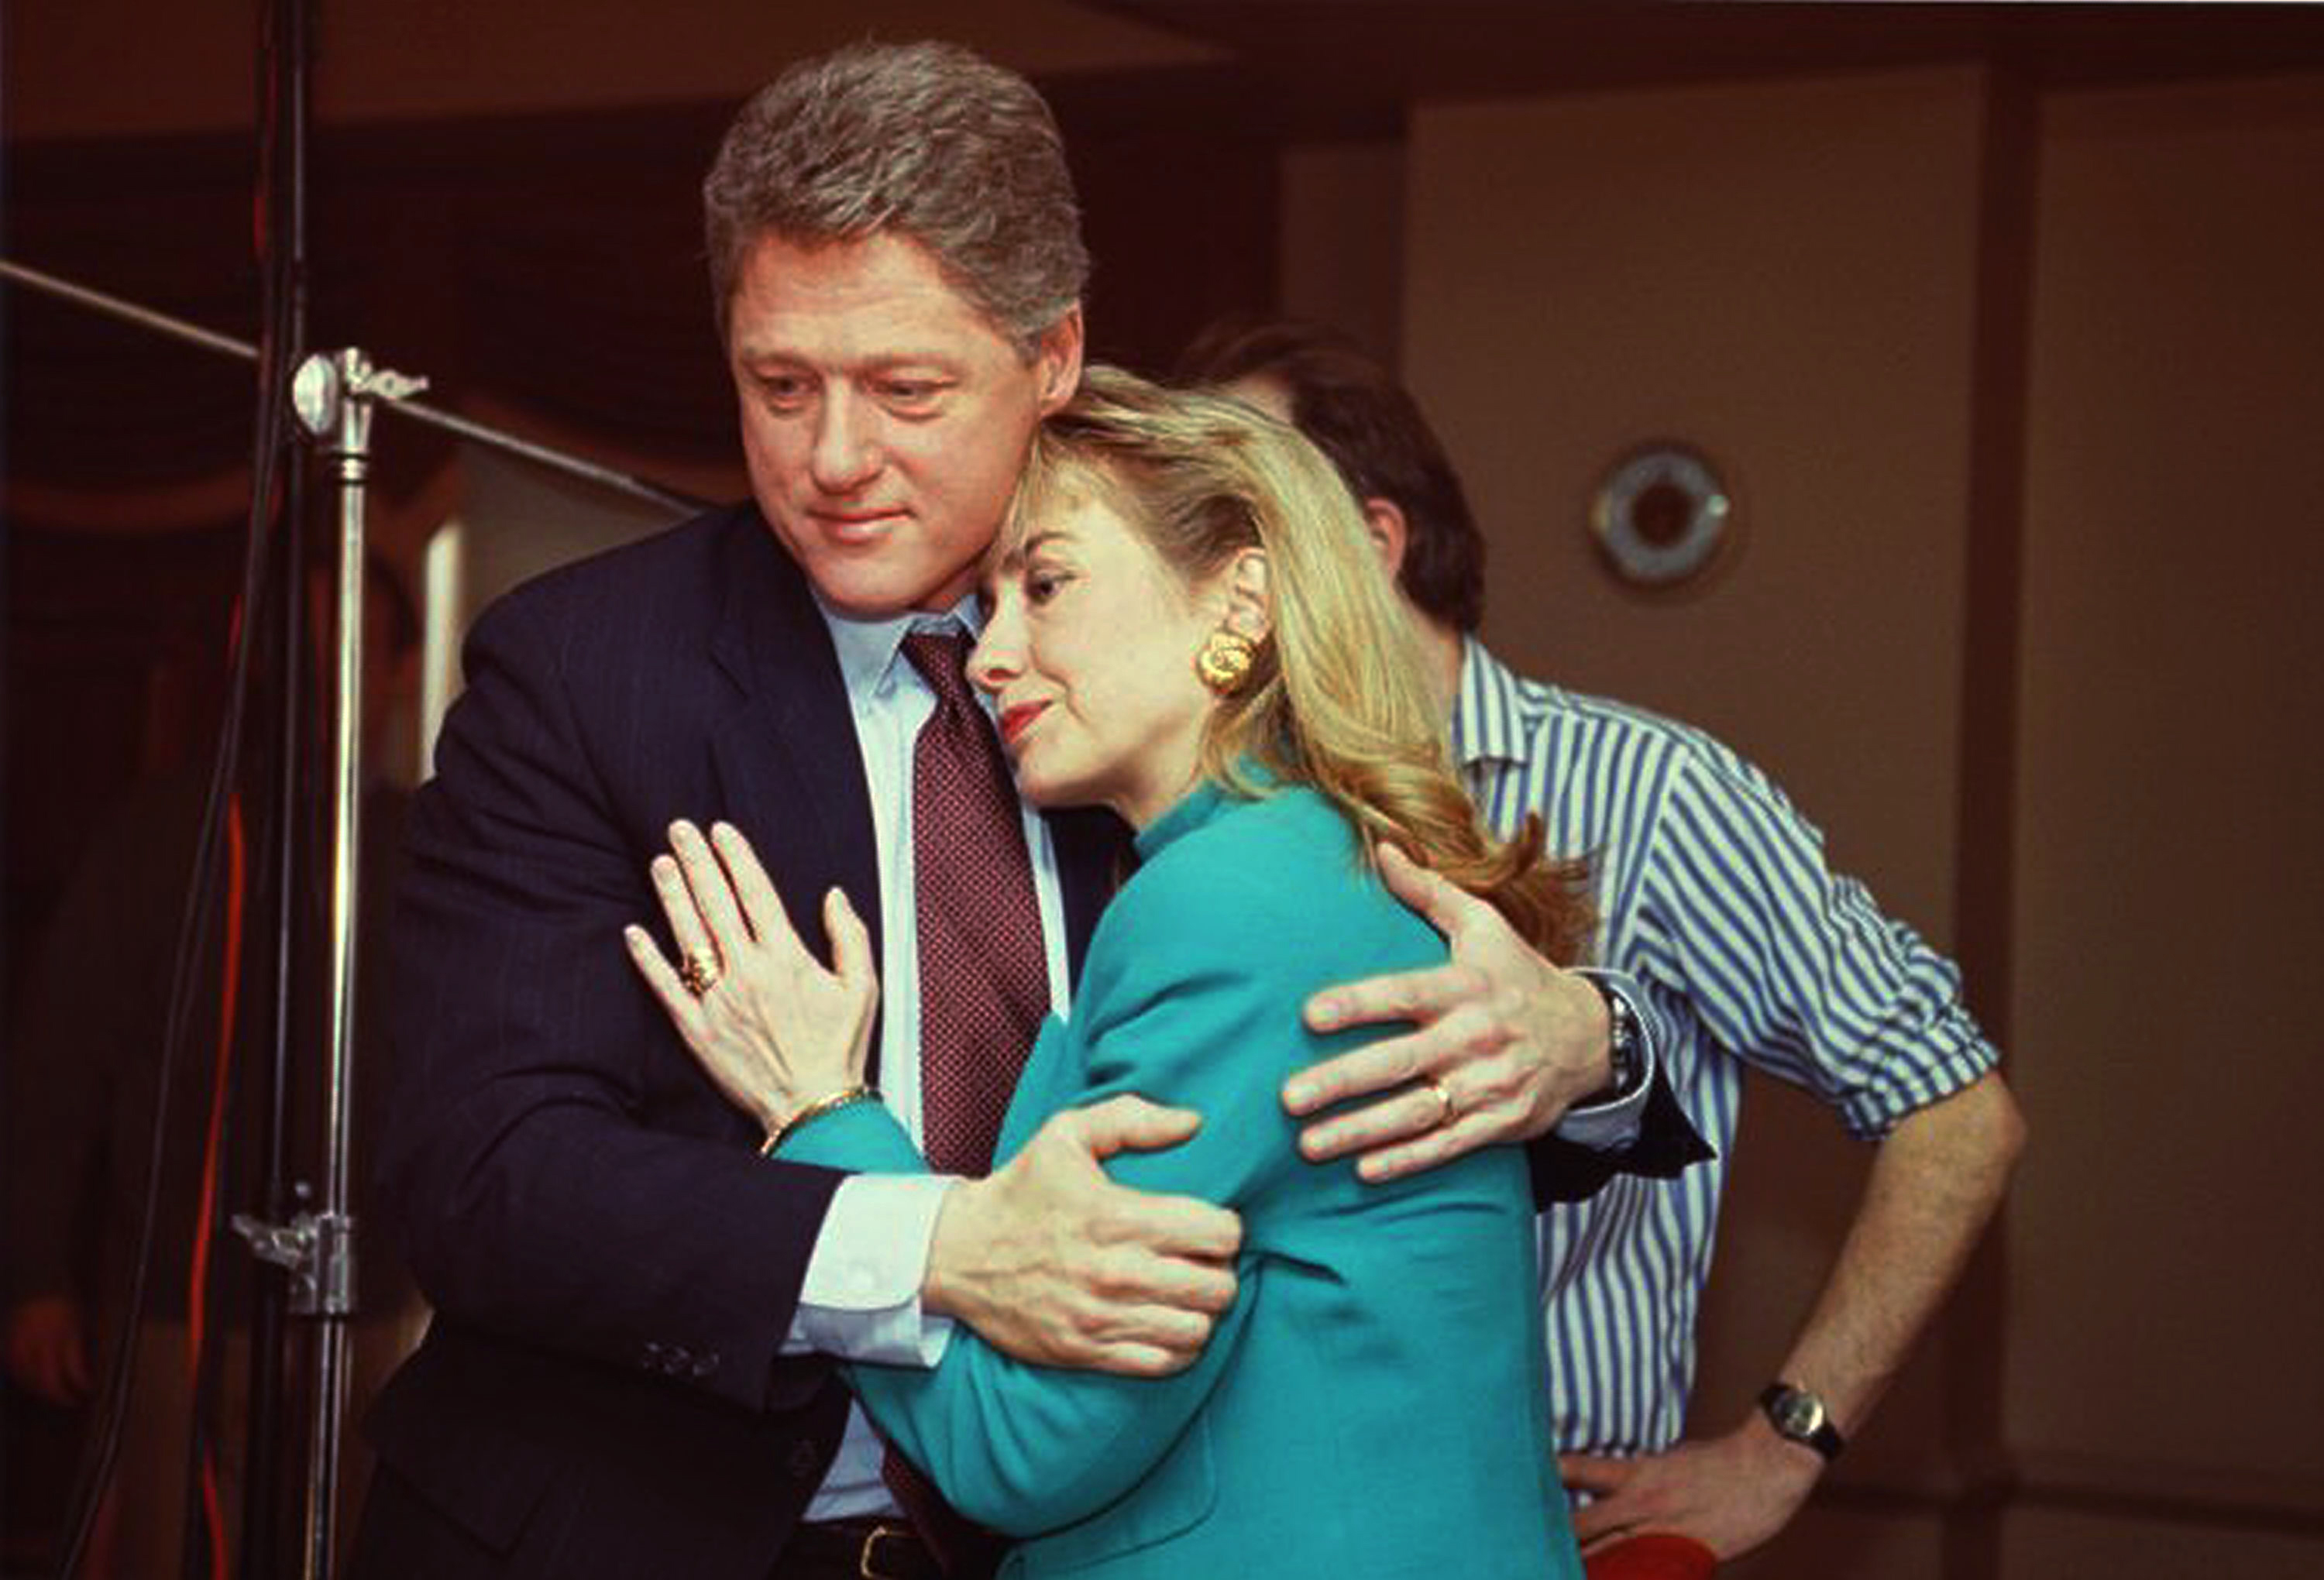 Arkansas Gov. Bill Clinton comforts his wife Hillary Rodham Clinton on the set of the news program '60 Minutes' after a stage light unexpectedly broke loose from the ceiling and knocked her down on Jan. 26, 1992.